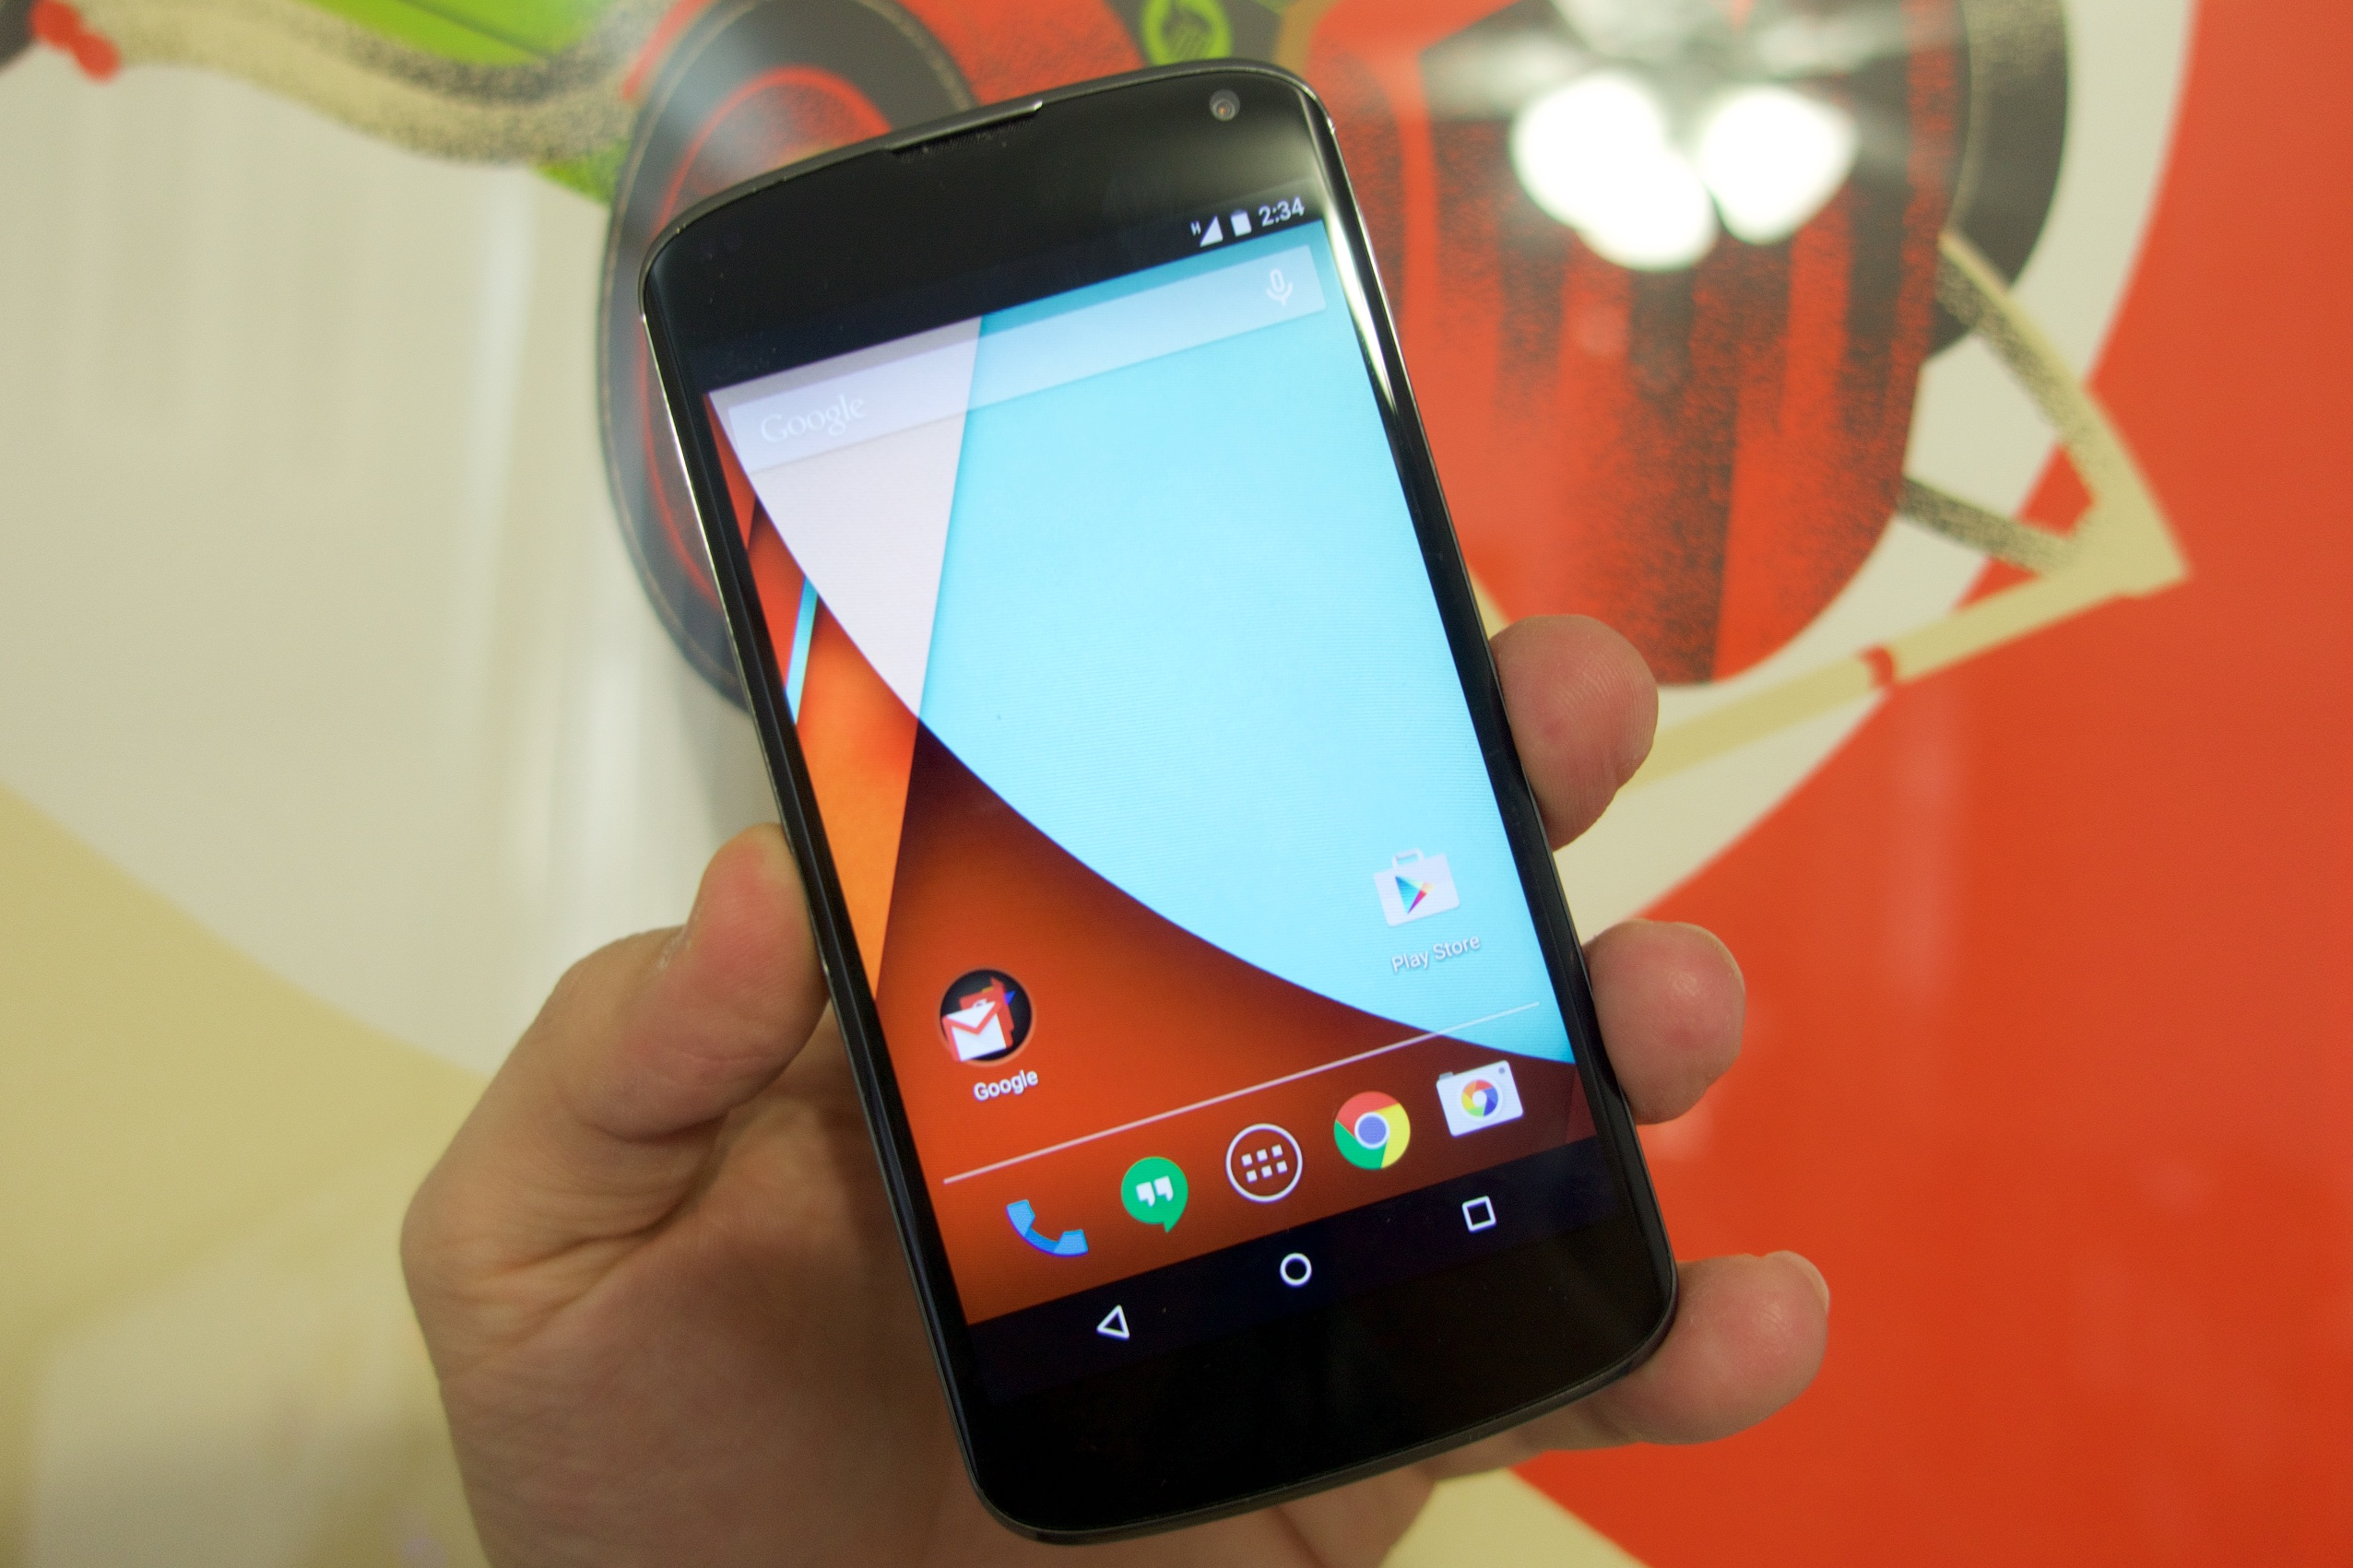 Android 5 0 1 lollipop and 5 0 2 update for nexus devices android - The Company Recently And Quietly Rolled Out An Android 5 1 Lollipop Update To Select Devices In Select Parts Of The World Android 5 1 Lollipop Is Still A